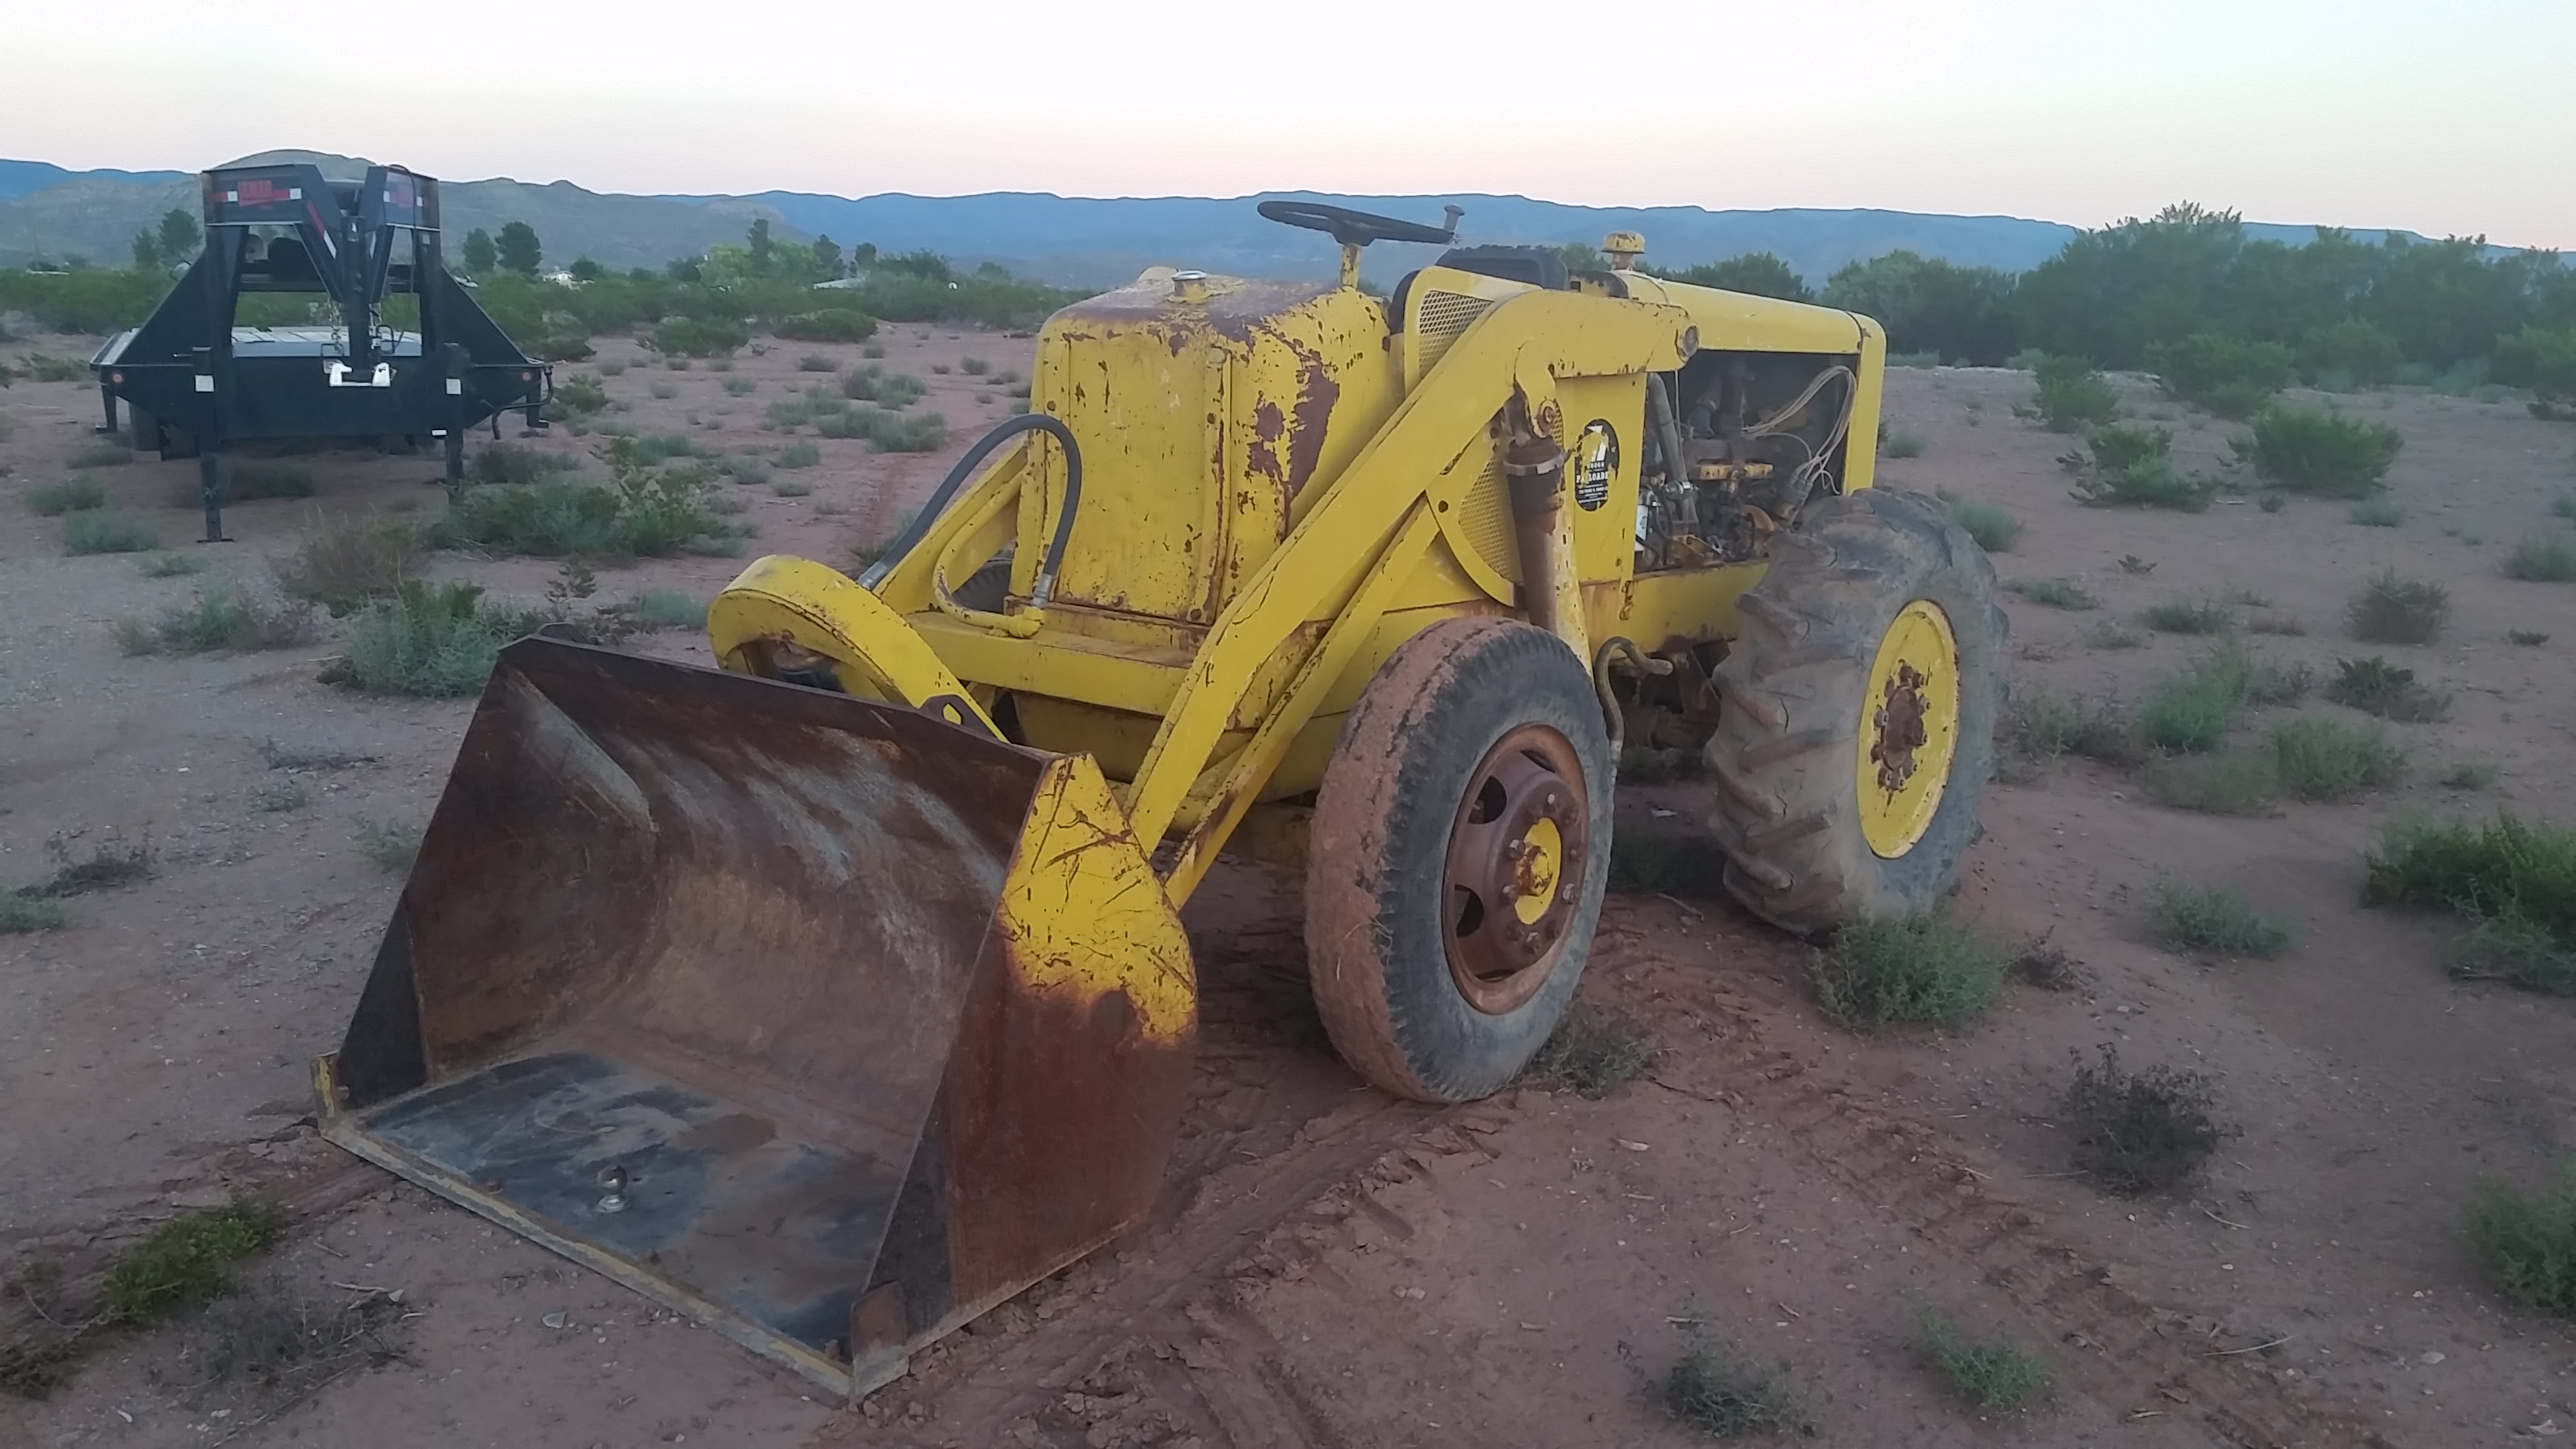 Hough HF Payloader - IH Construction Equipment - Red Power